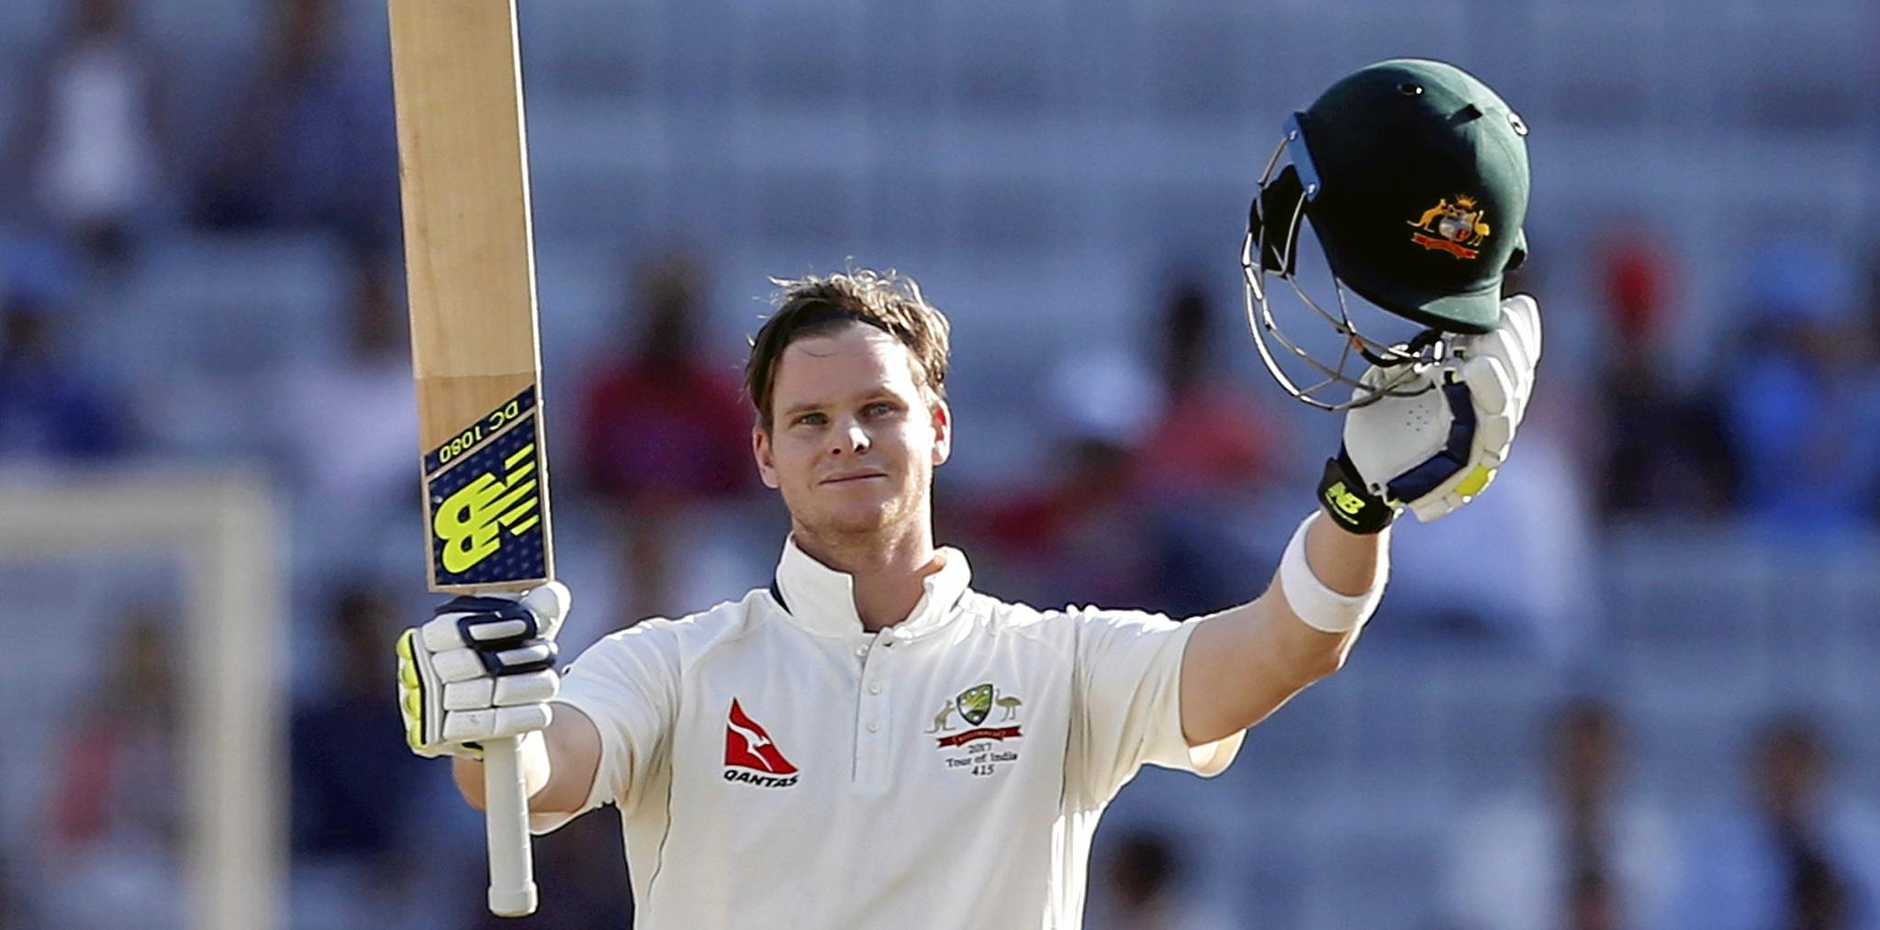 Australia's captain Steven Smith raises his bat and helmet to celebrate scoring a century against India in Ranchi